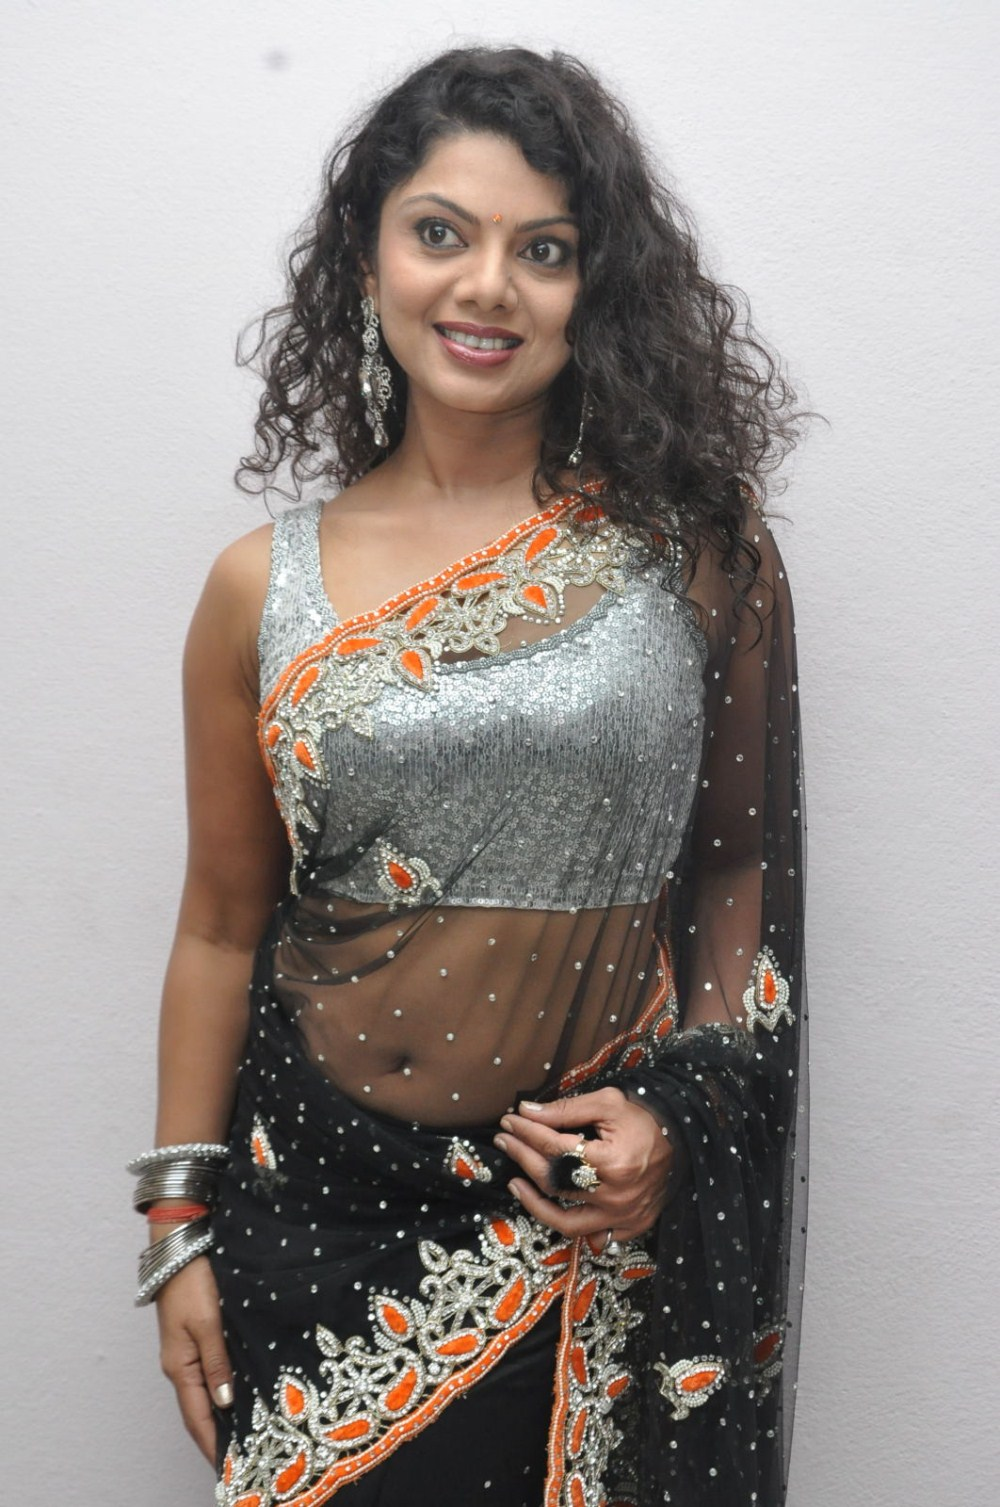 Decorative & foxy looking Swathi varma hot saree pictures at deal audio function latest pics